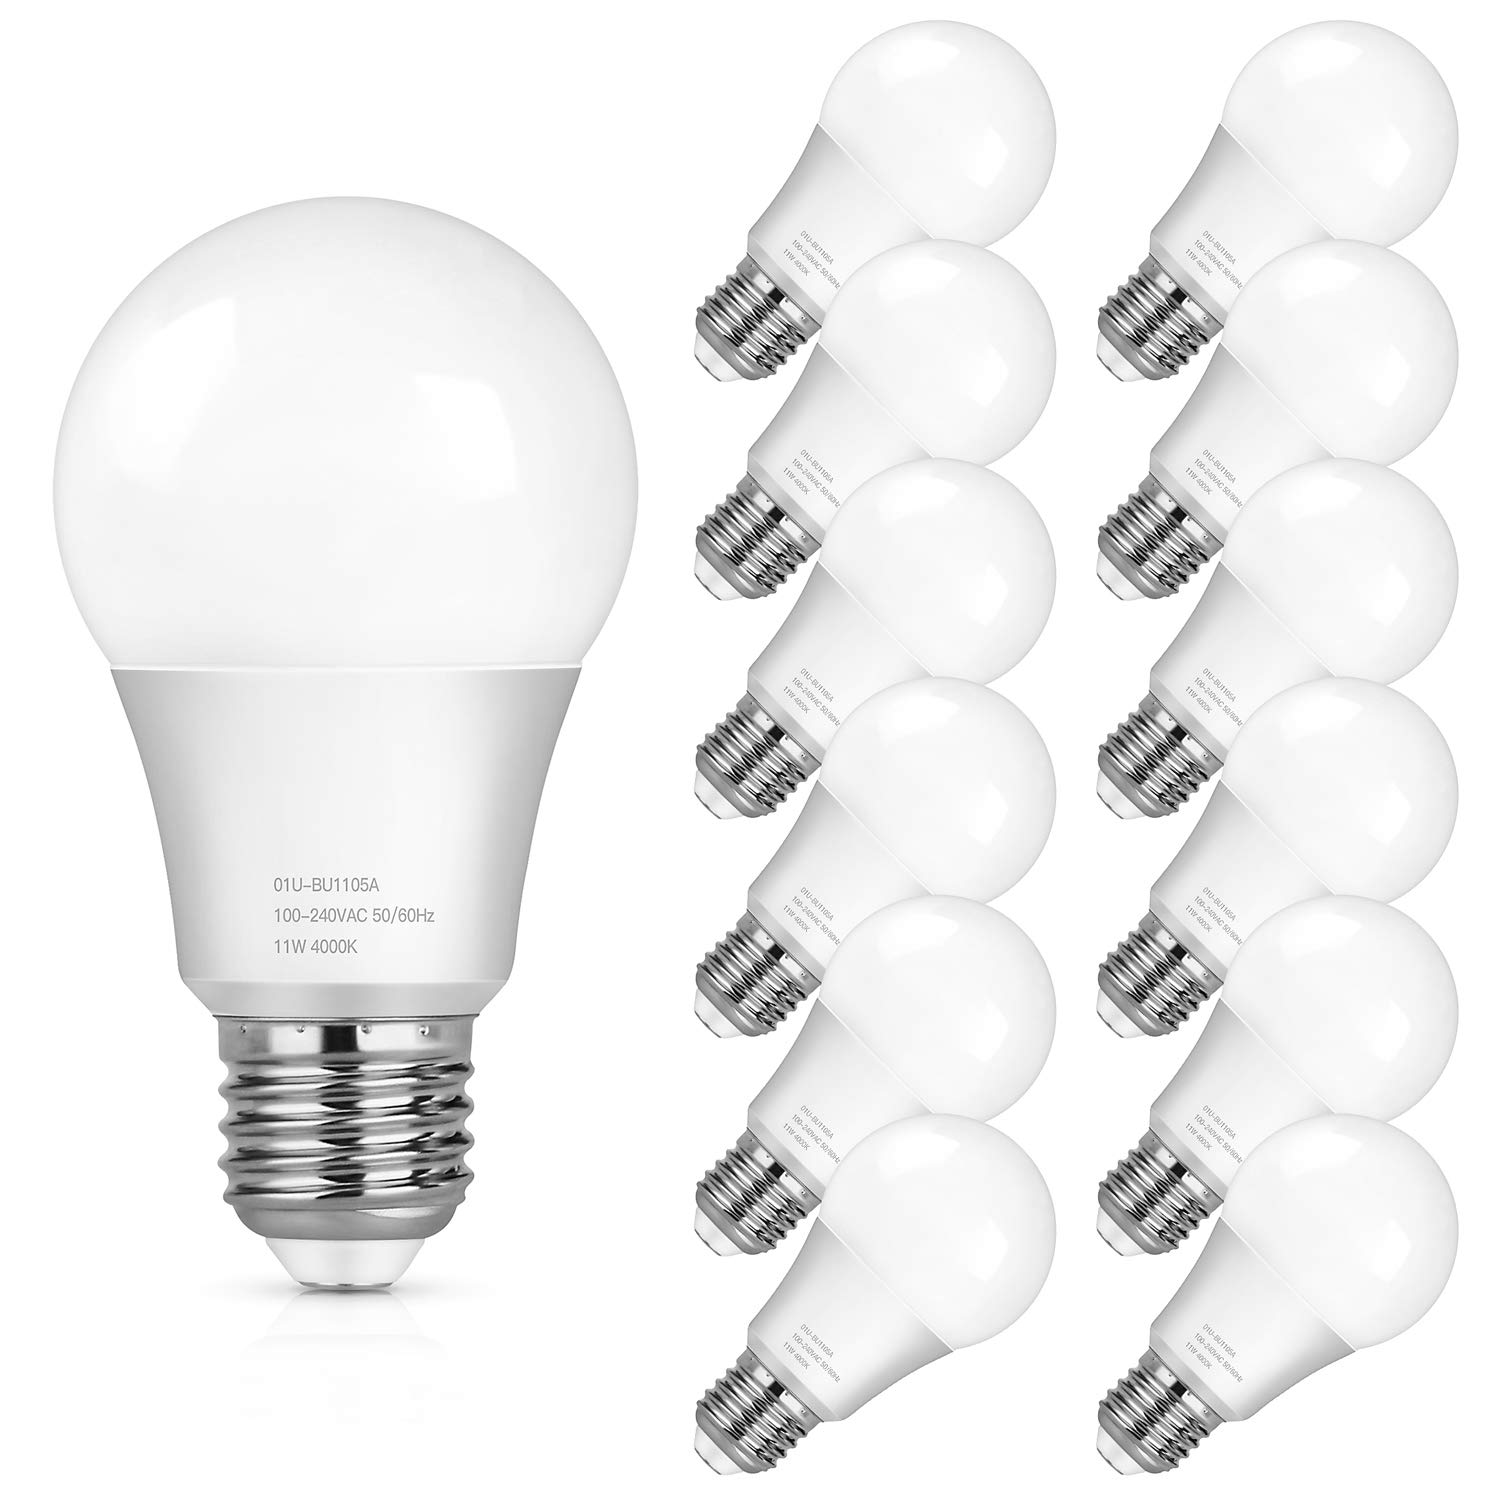 A19 LED Light Bulbs, 100 Watt Equivalent LED Bulbs Daylight White, 1100 Lumens, No Flicker E26 Medium Screw Base Bulbs, Non Dimmable, 12-Pack